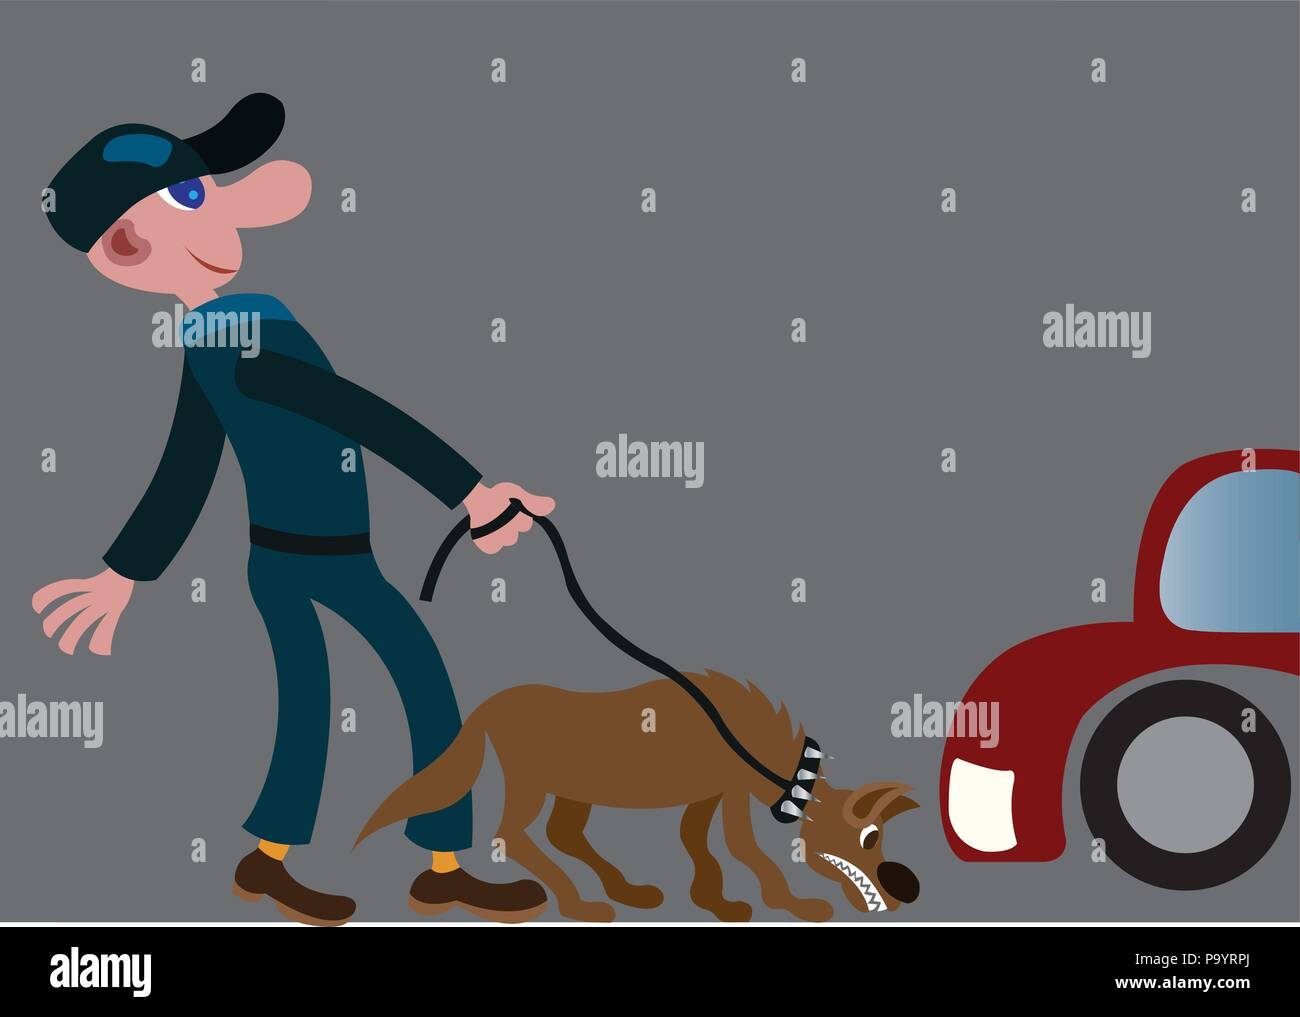 A park security guard checks on customers vehicles using a snifer dog - Stock Image